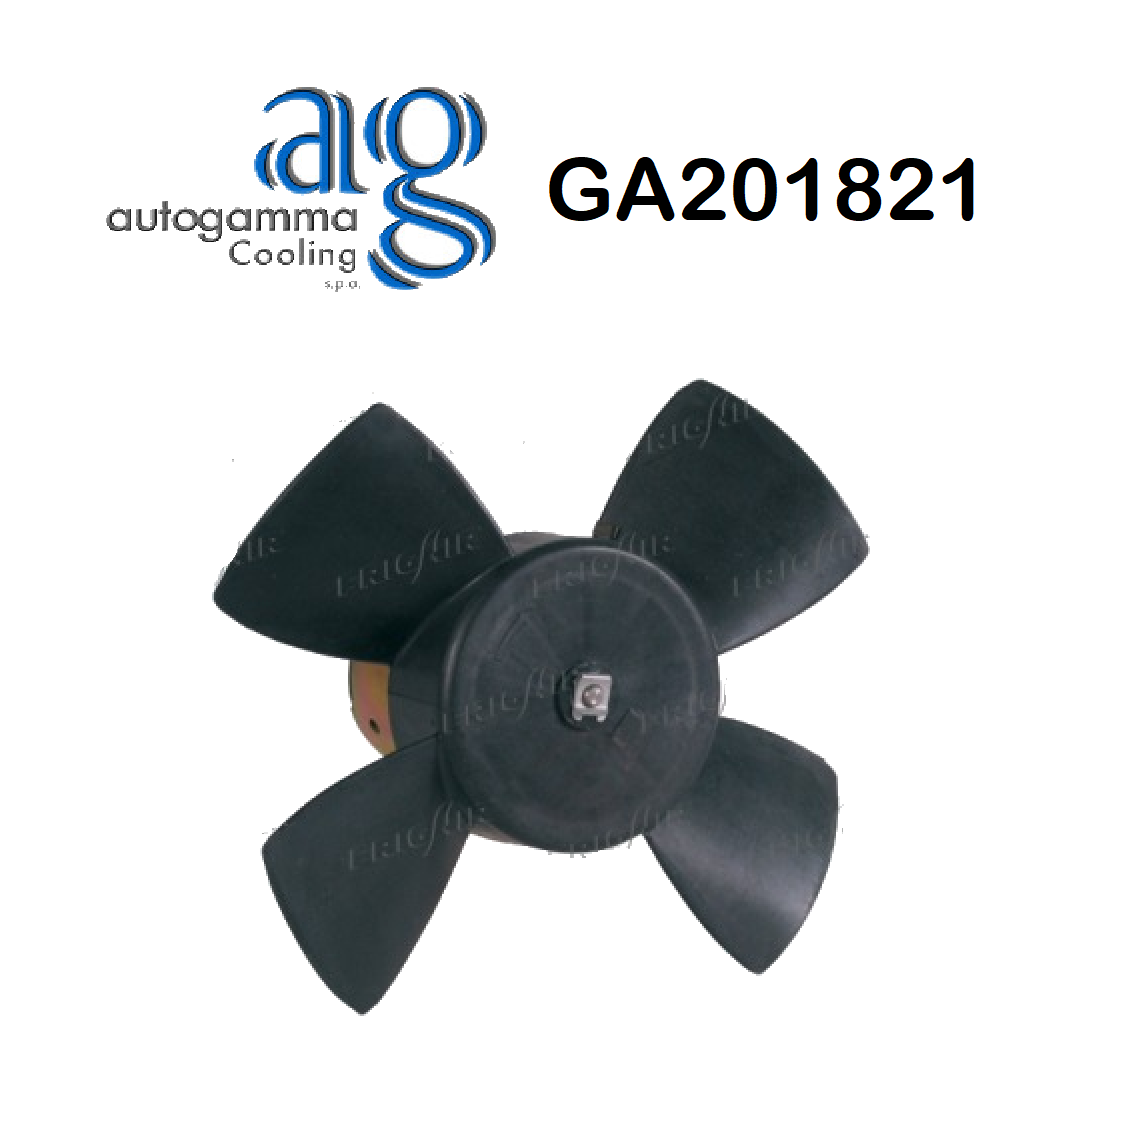 OPEL CORSA ENGINE COOLING FAN AUTOGAMMA FOR 1341244